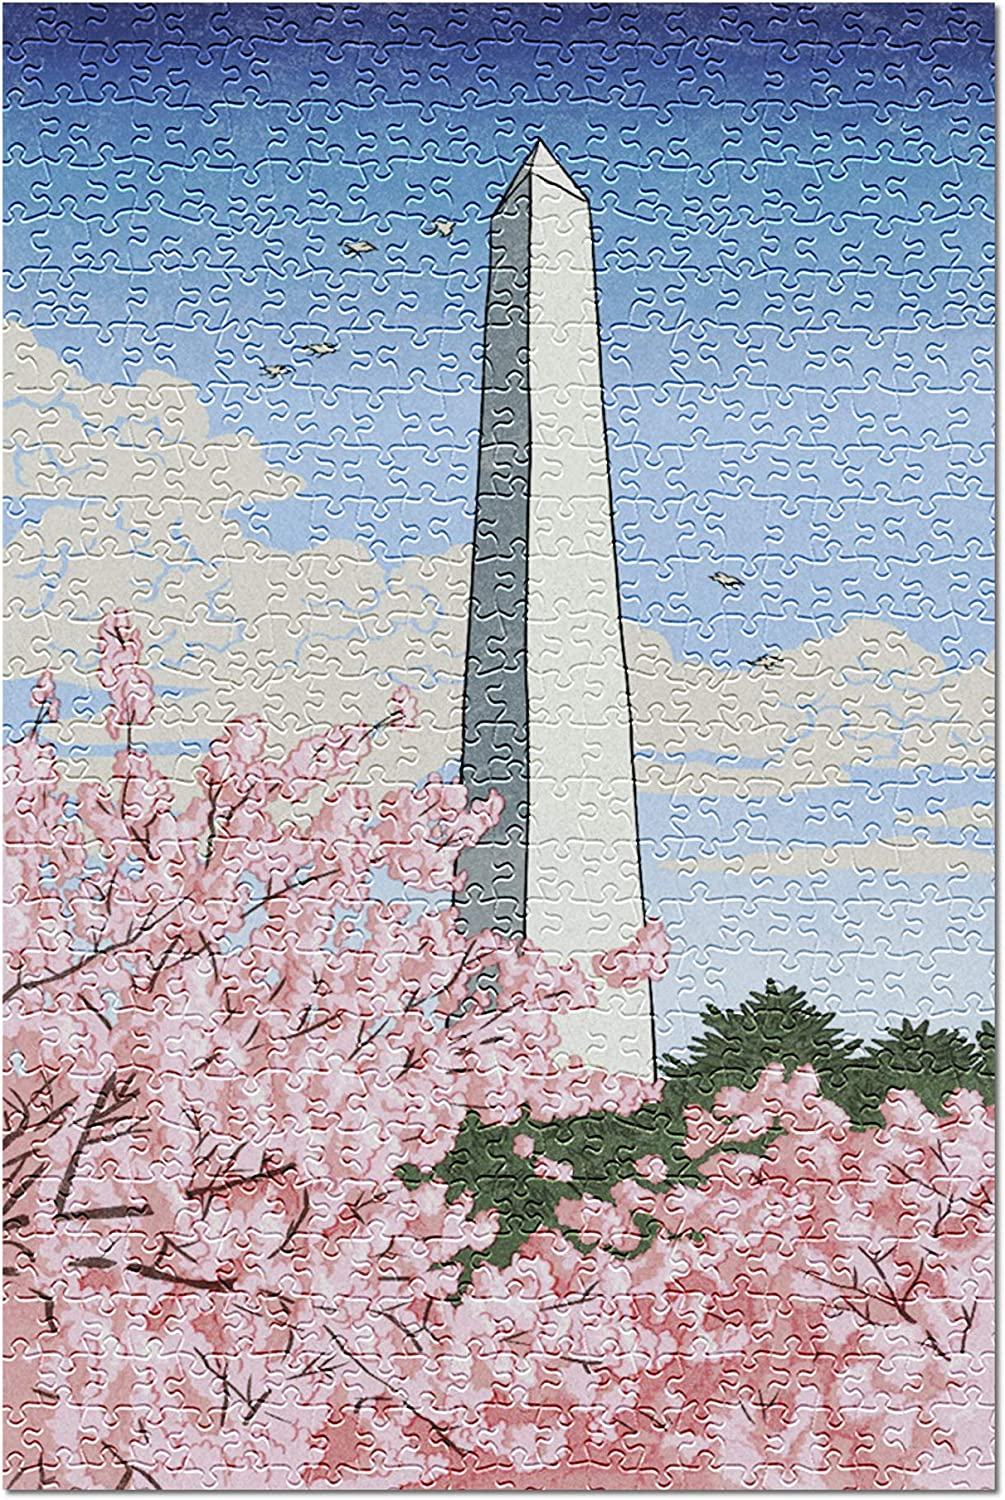 Gorgerous Washington Dc Wood-Material,20.6 X 15.1 Inch Entertainment Toys for Adult Special Graduation 500 Piece Jigsaw Puzzle